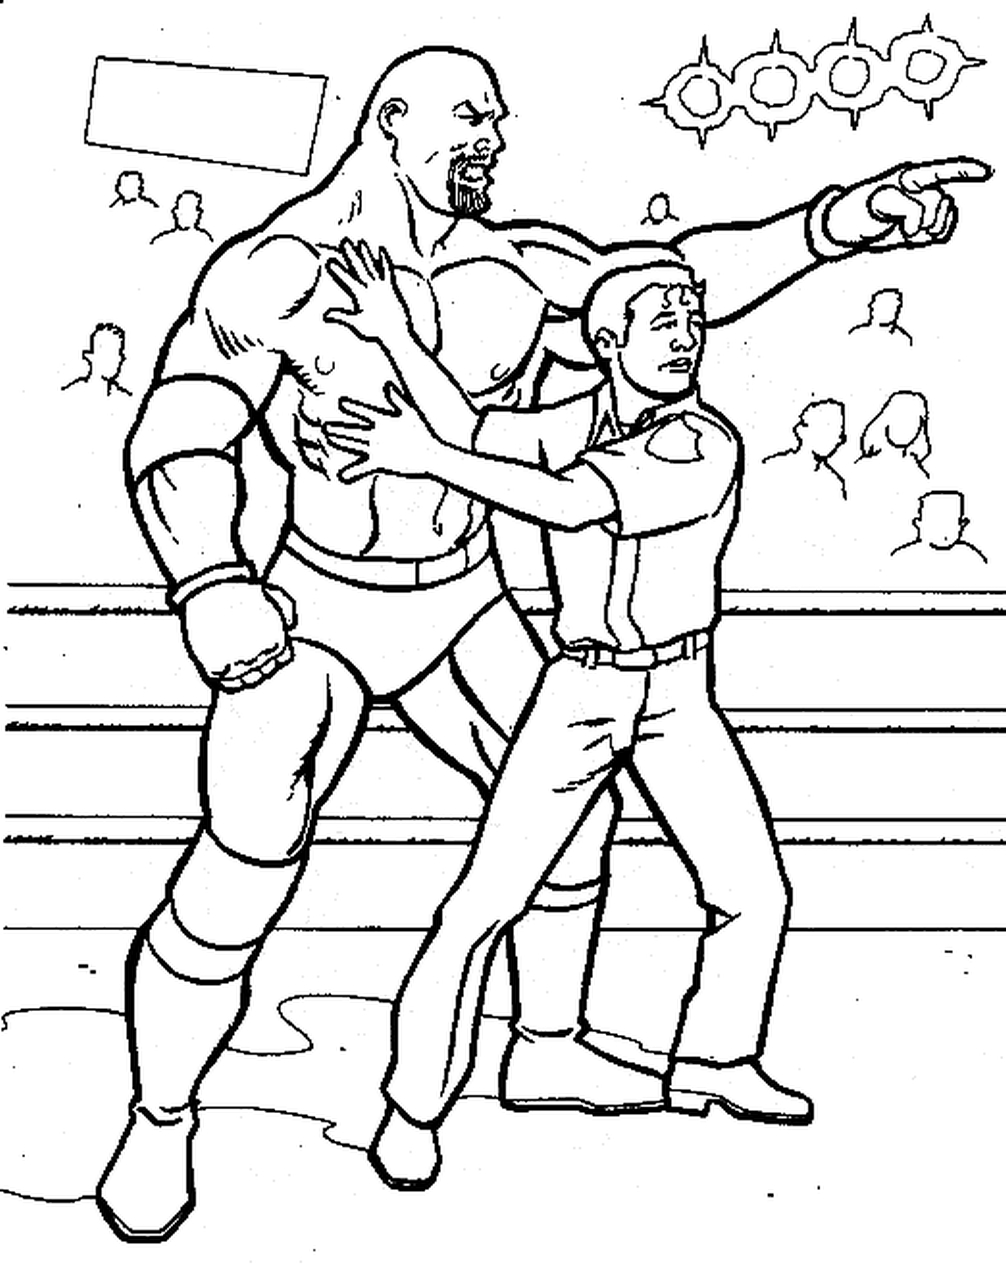 Wwe coloring pages to print - Printable Wwe Coloring Pages Goldberg 41947